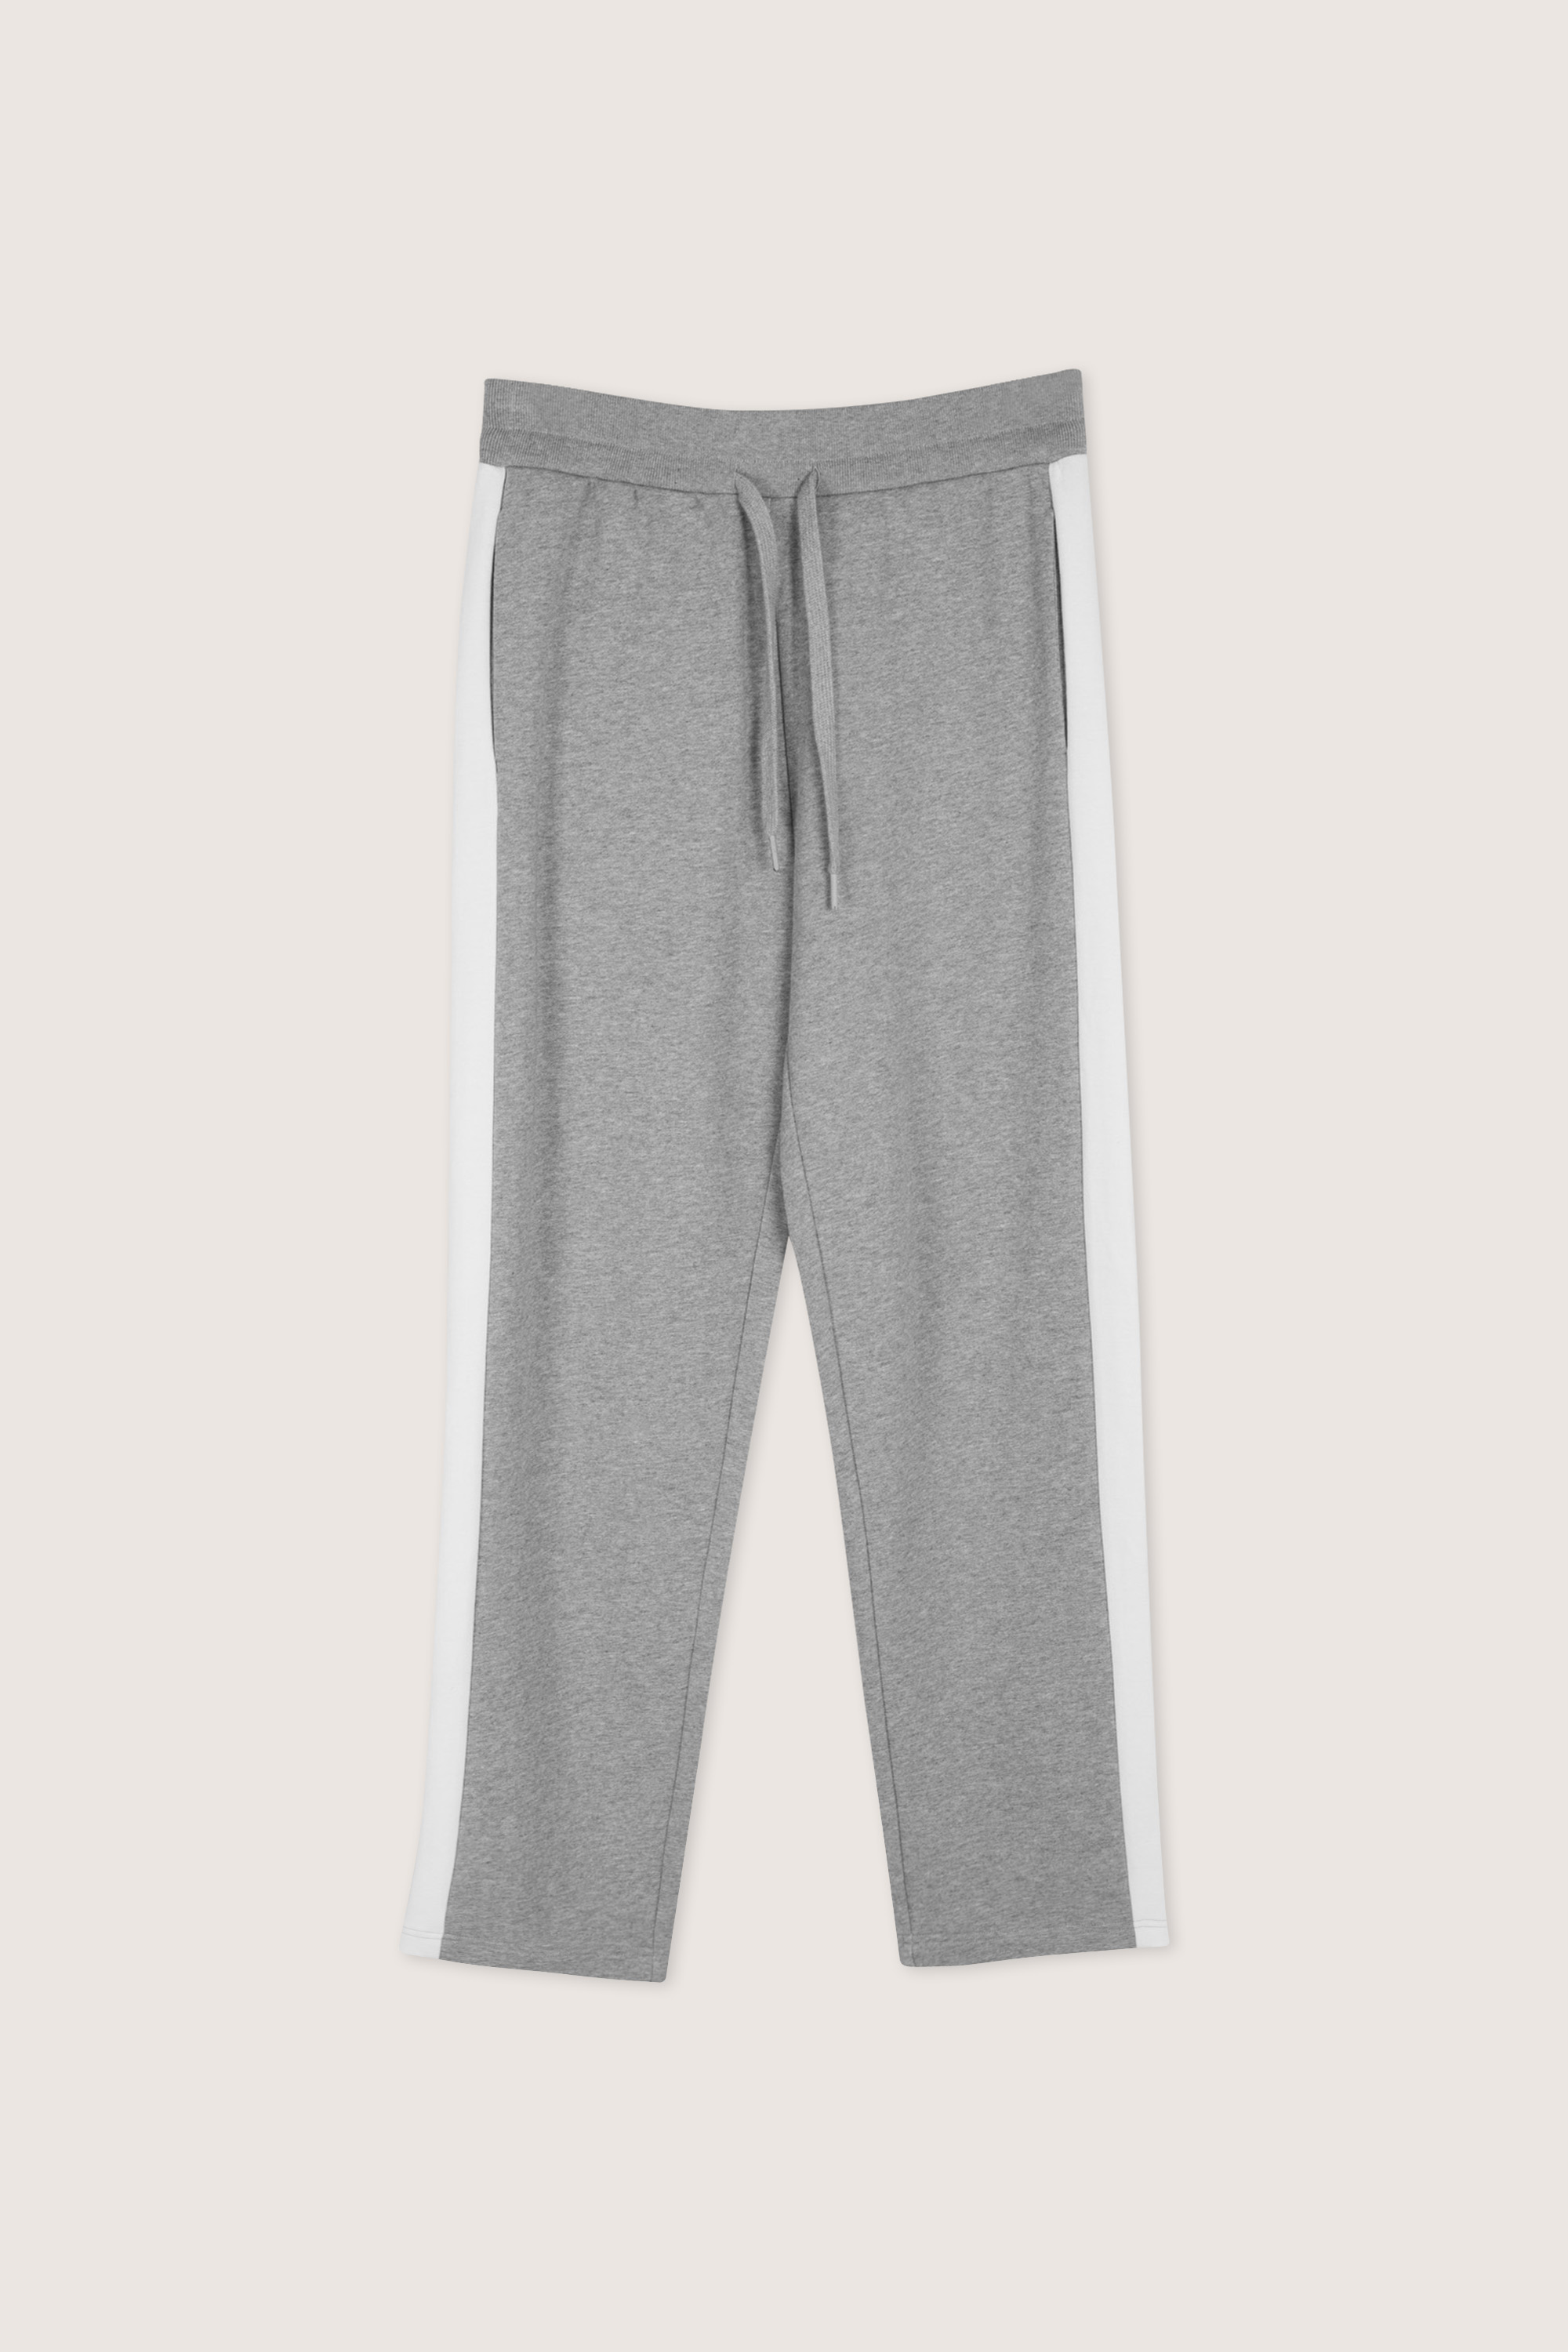 Pant 1934 Heather Gray 8